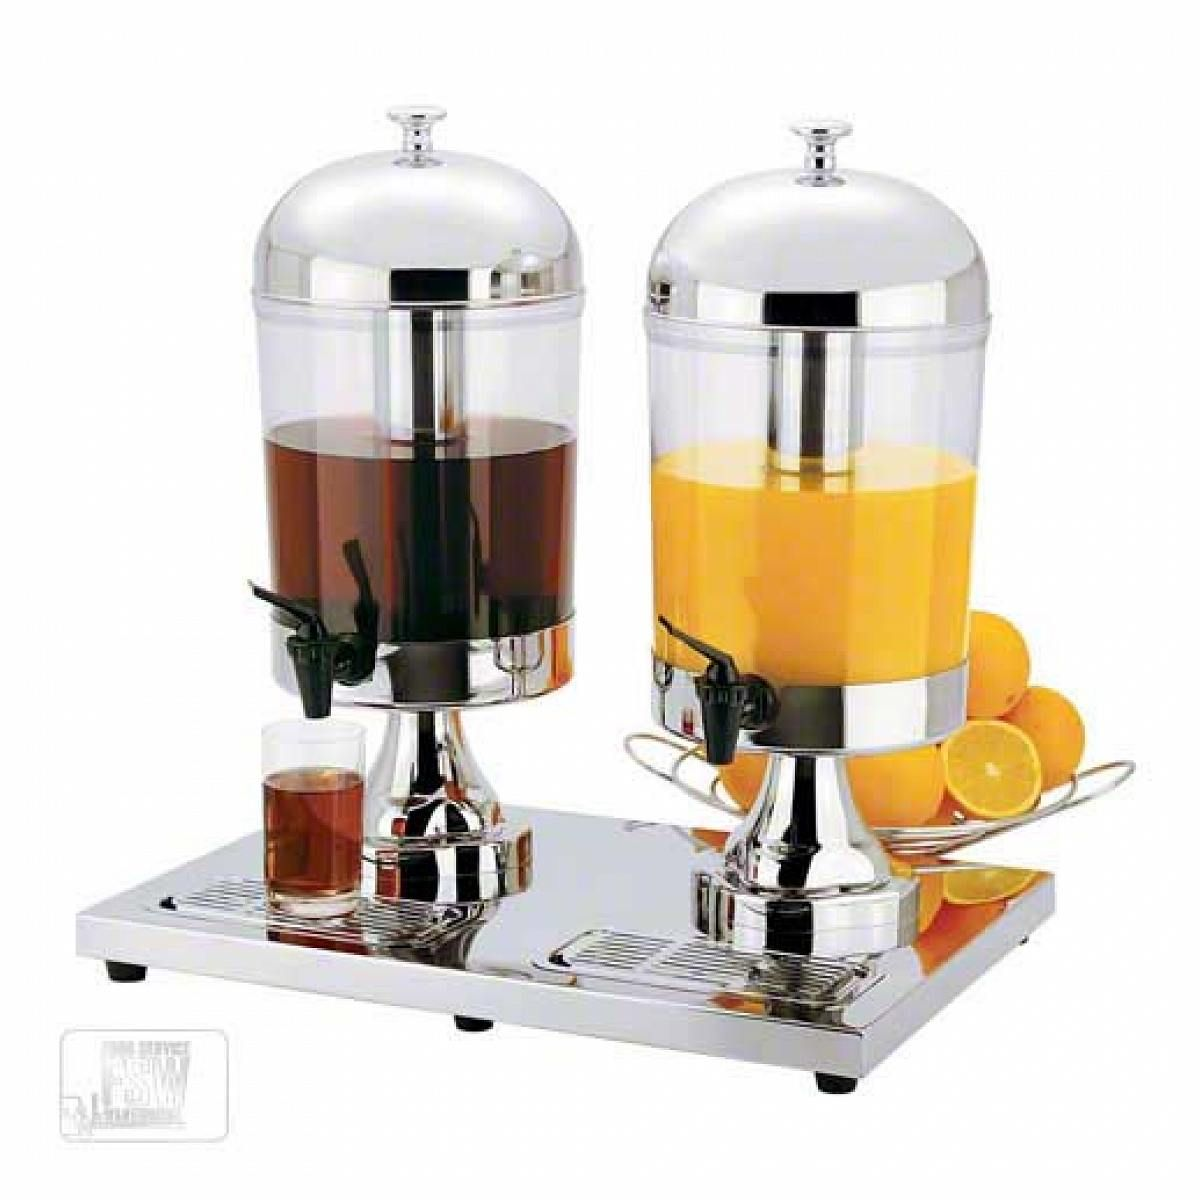 nice Focus Foodservice KPW9502 Dual beverage dispenser - 8.5 qt-8.0 l per dispenser,  #FocusFoodserviceJuicers&Blenders